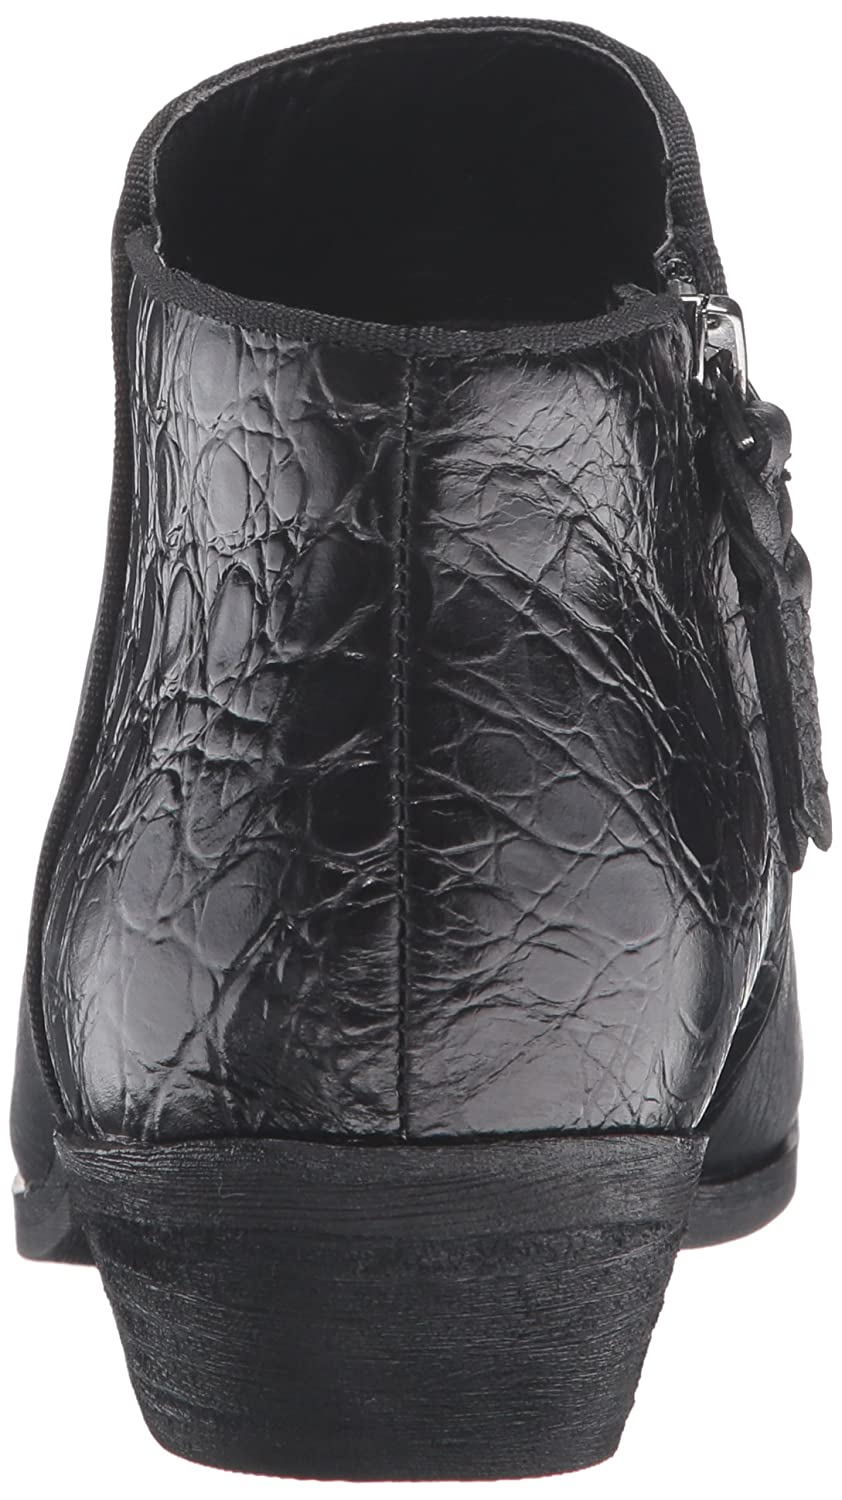 SoftWalk Women's Rocklin Boot B019QNL1NG 7.5 W US|Black Crocodile